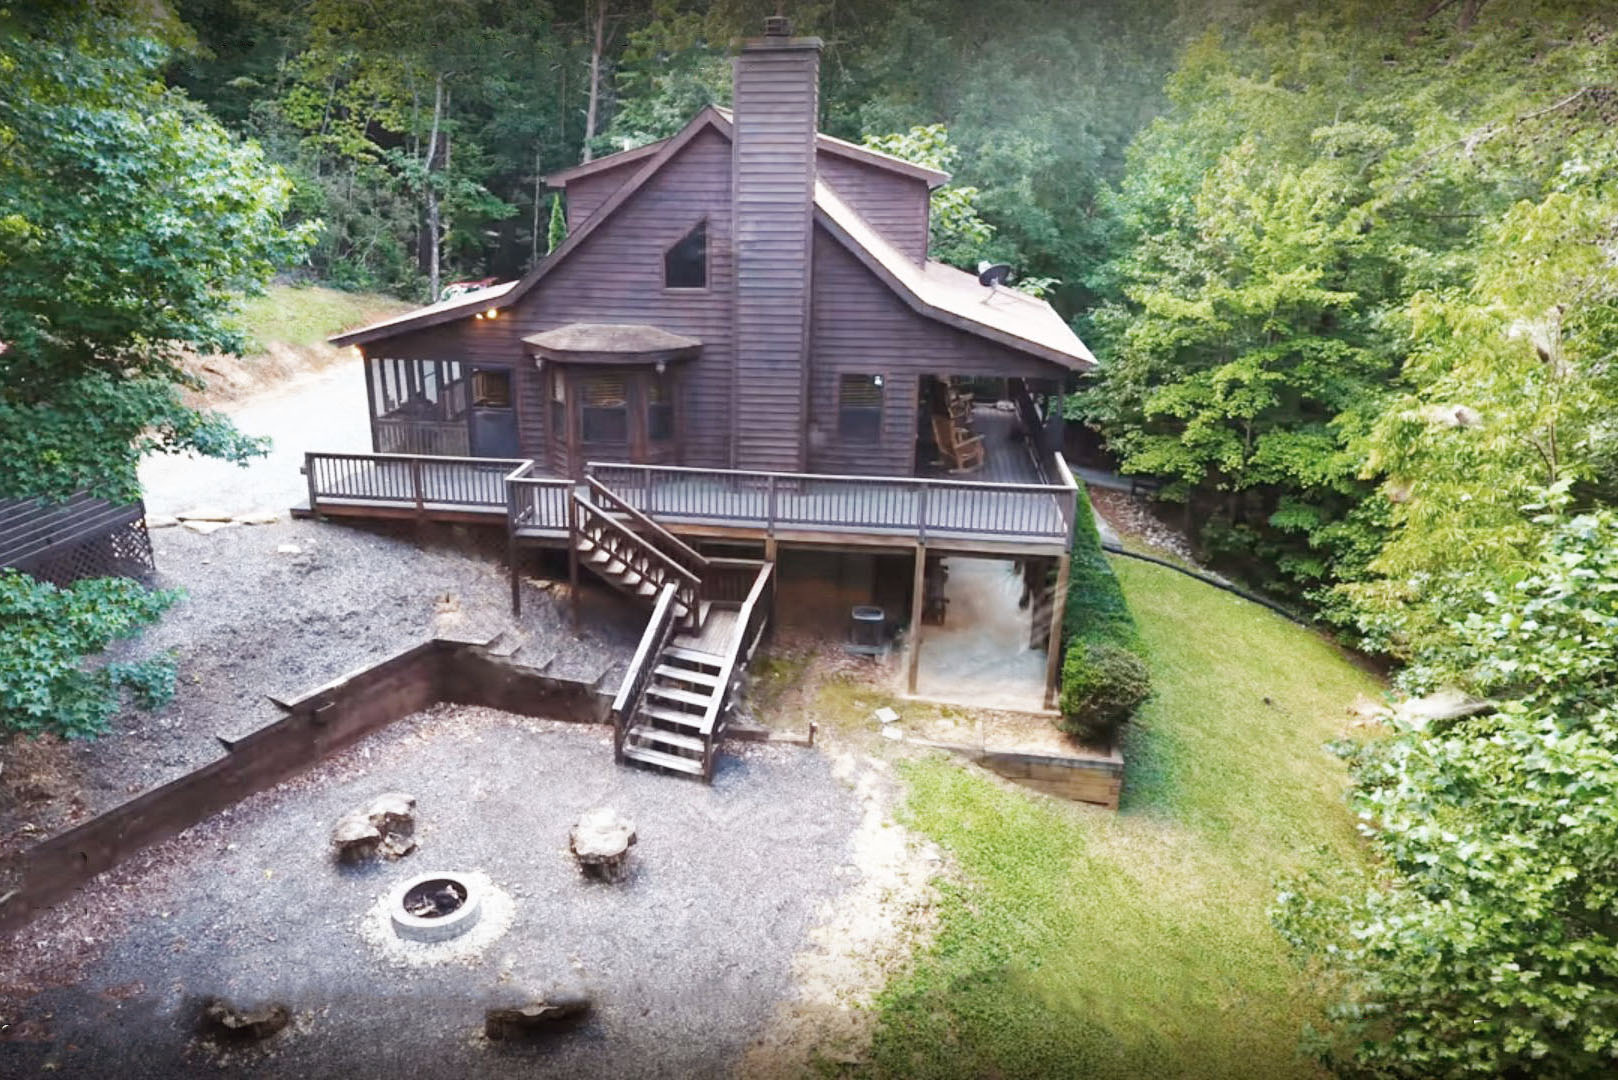 Bird`s eye view of Bearadise cabin.